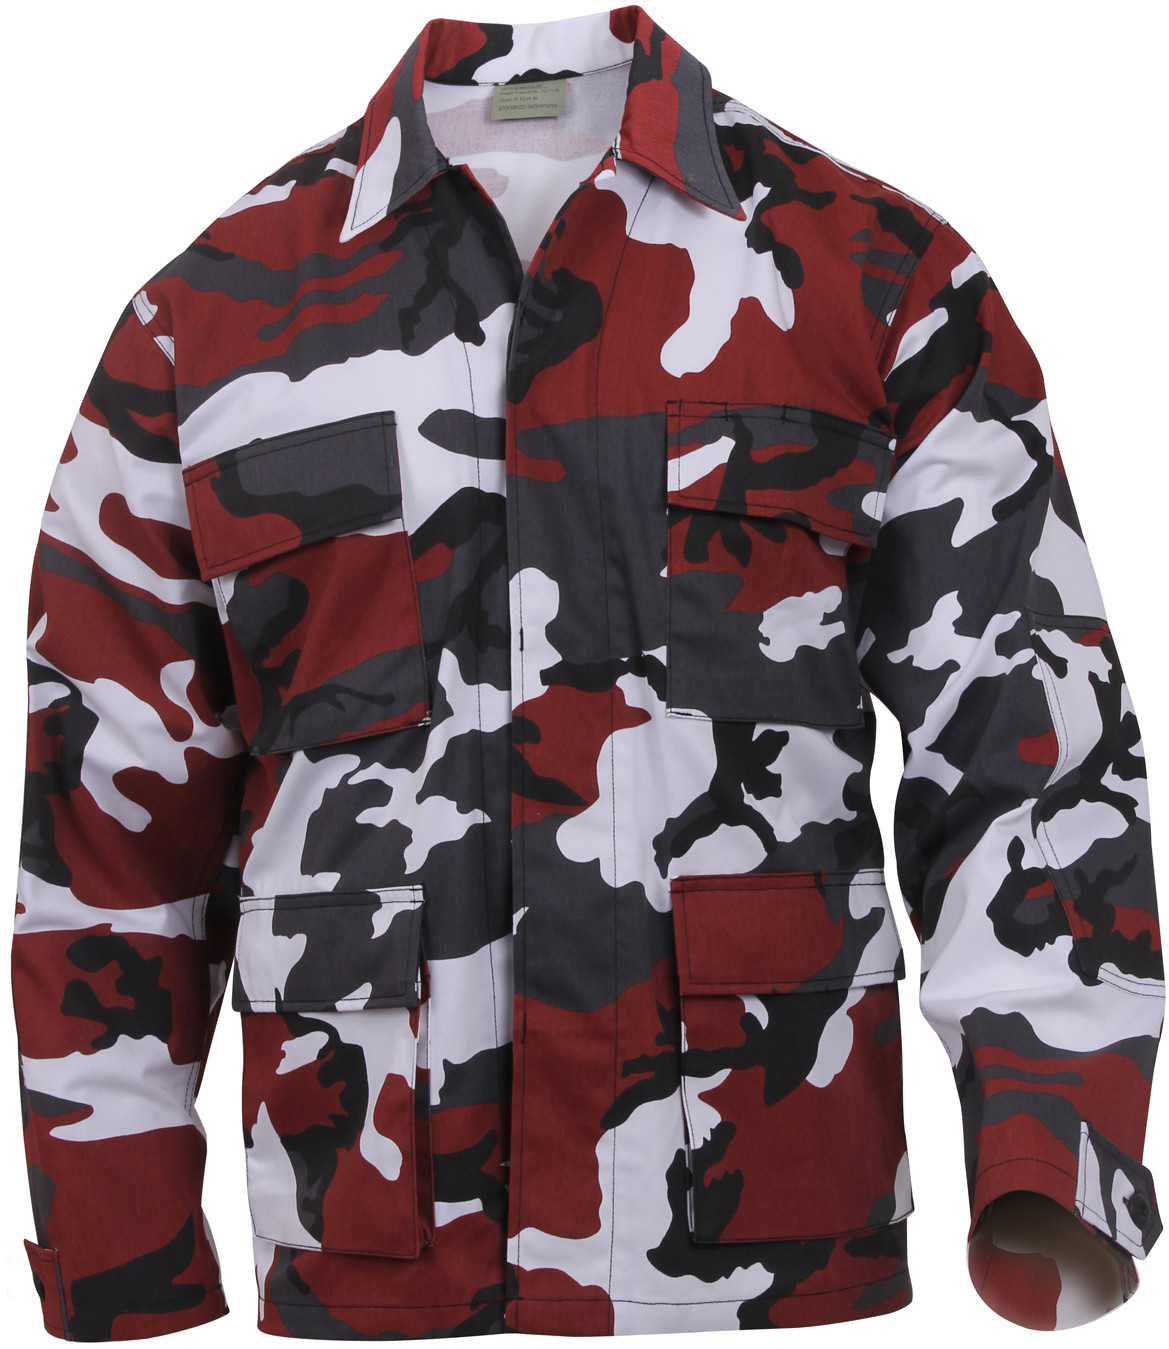 Red Camouflage Military BDU Fatigue Jacket Tactical Coat Shirt 133bf469980